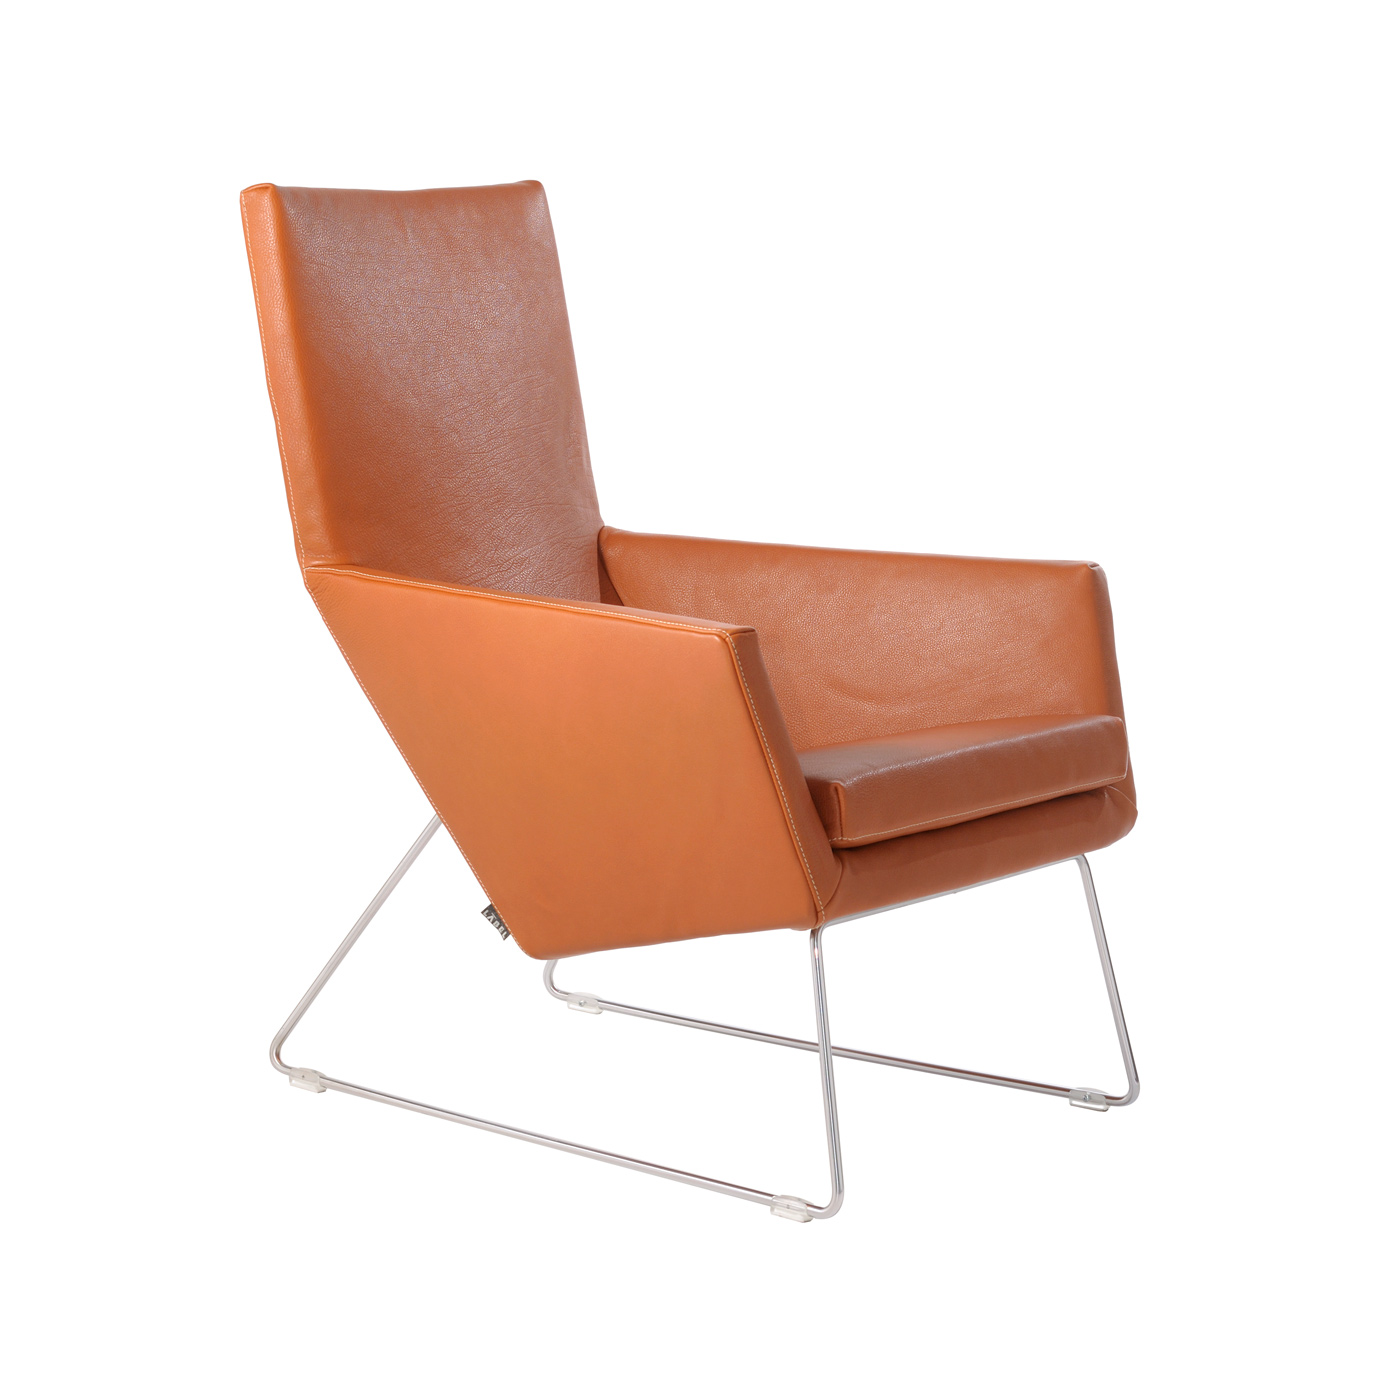 Fauteuil Don Label van den Berg